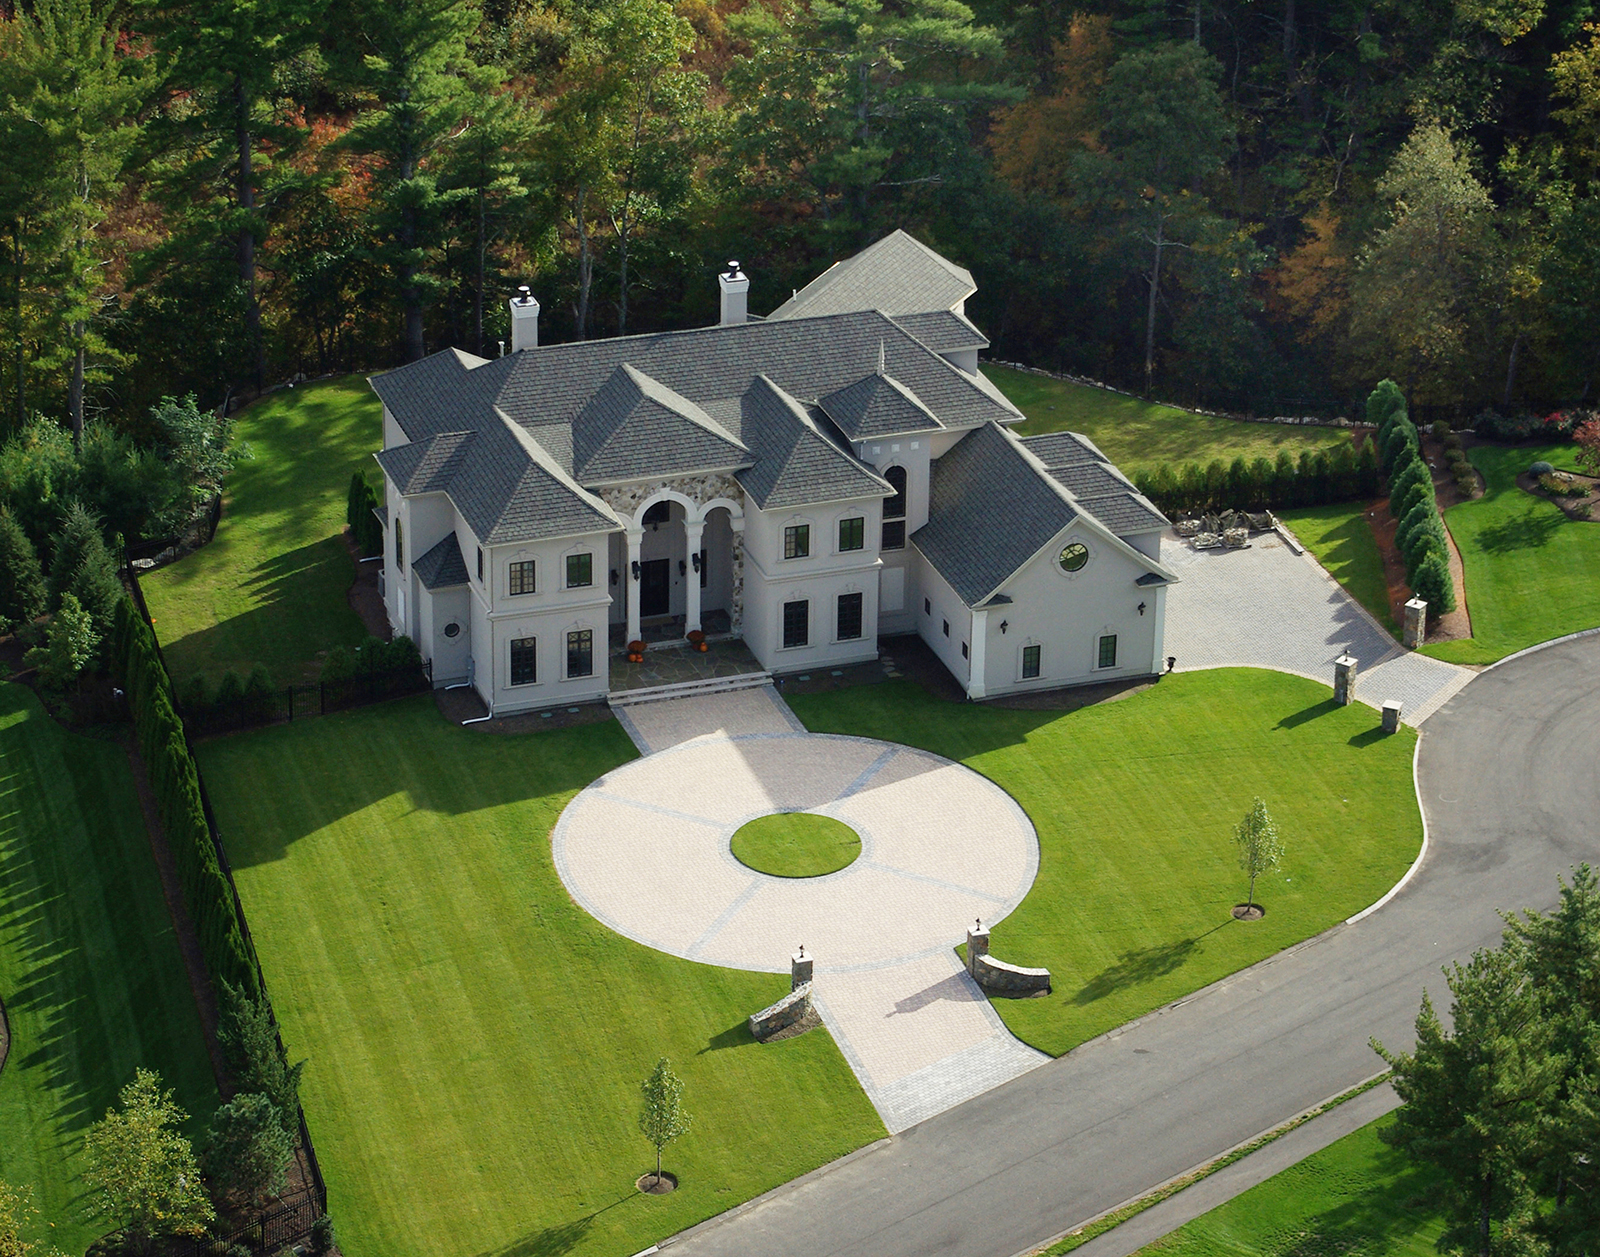 Single Family Home for Sale at Magnificent custom-built villa constructed in 2007. 2 Warren Drive Middleton, Massachusetts, 01949 United States